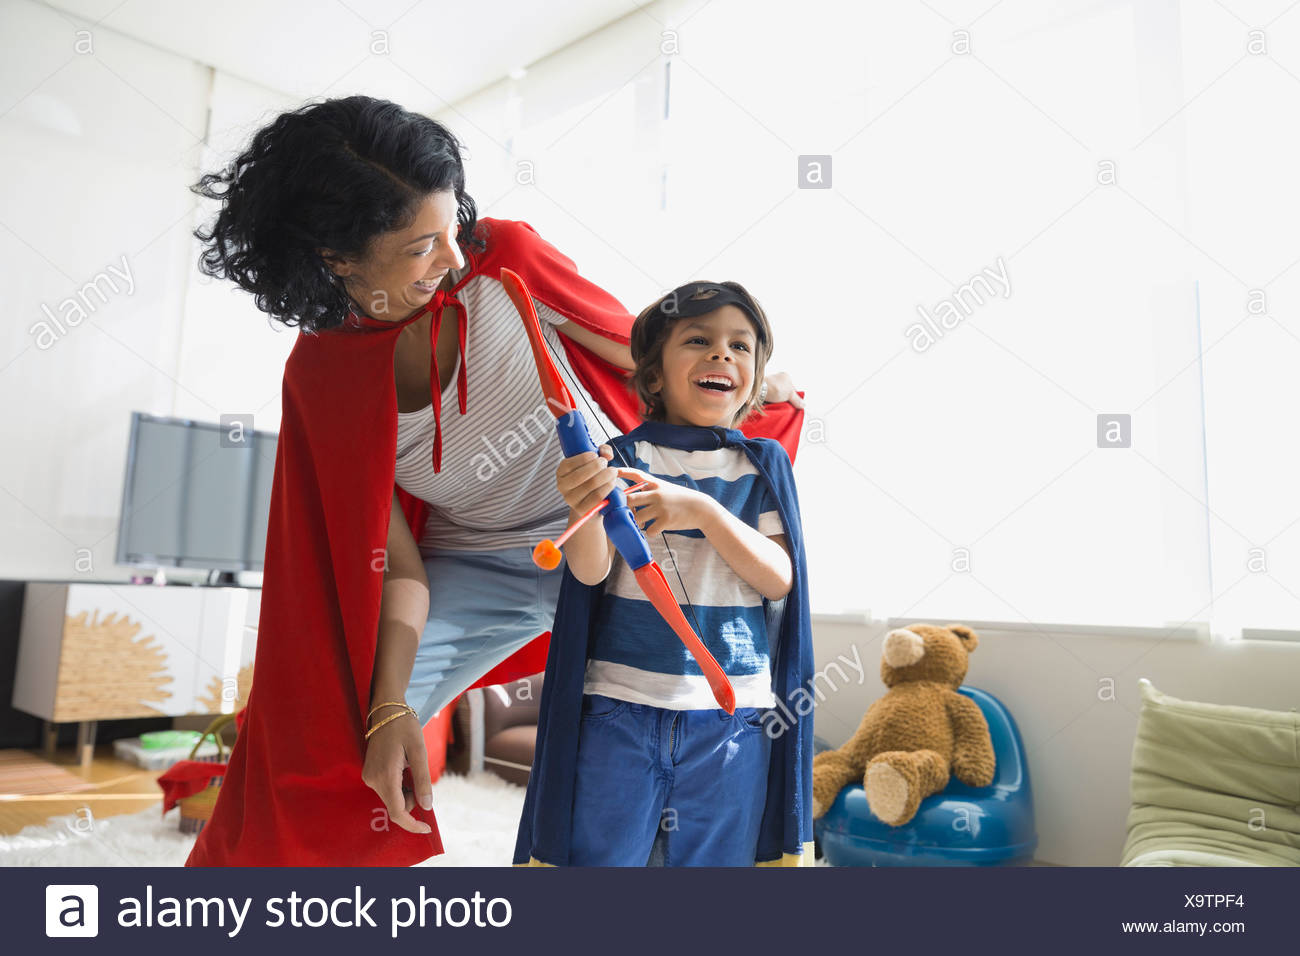 Mother and son in superhero costumes - Stock Image